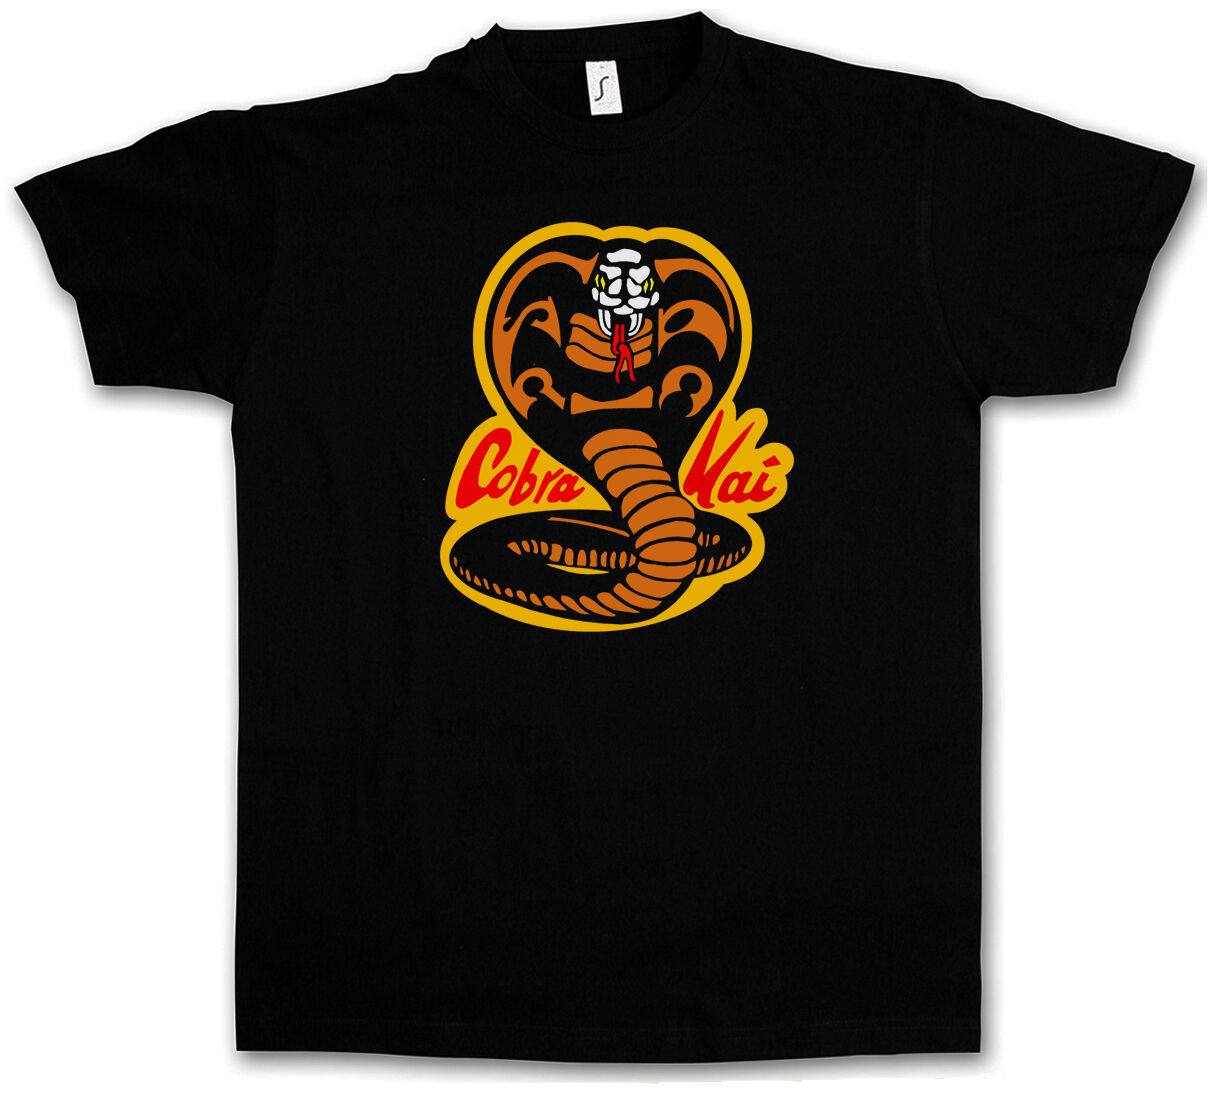 COBRA-KAI DOJO T-SHIRT - Karate Kid Movie Retro Martial Arts Shirt image